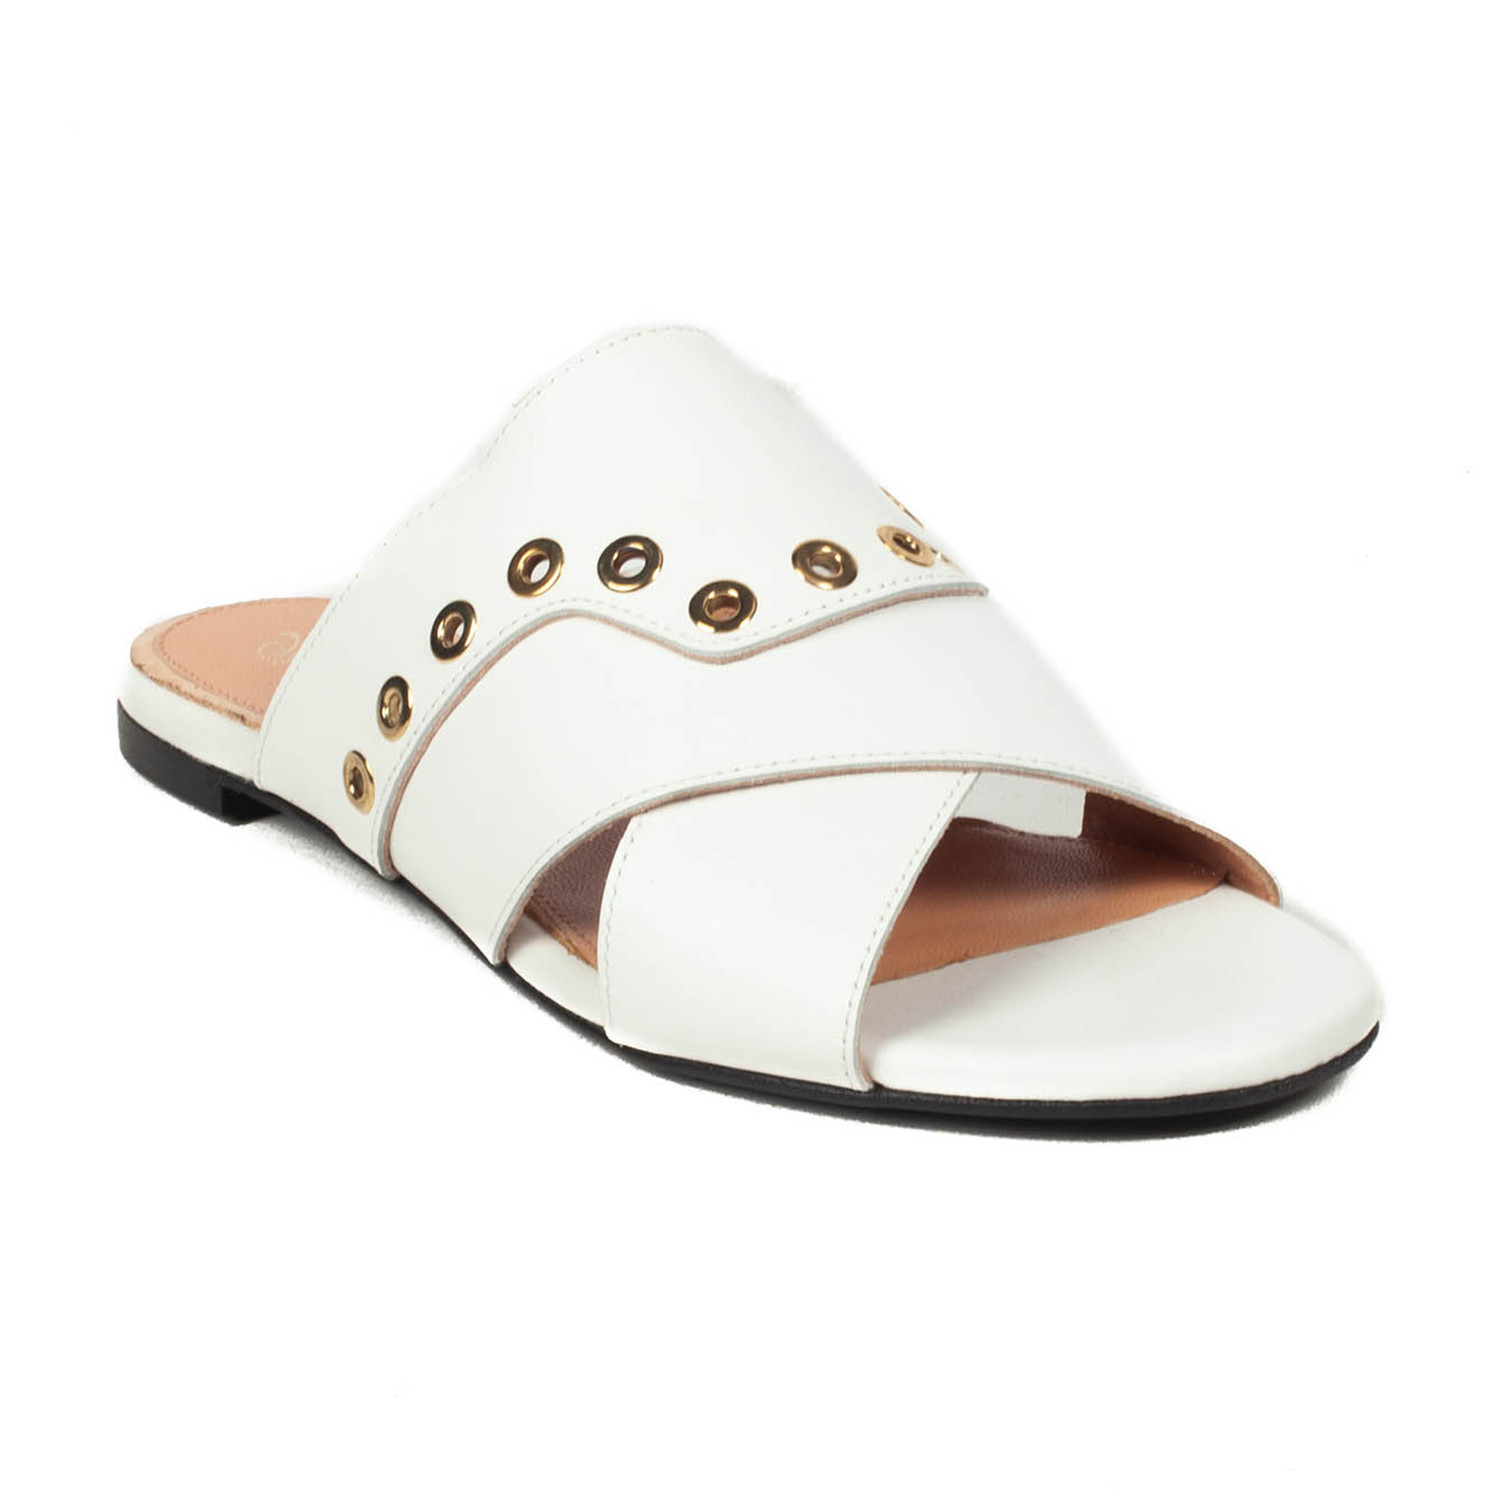 c16b27a23954 Robert Clergerie    Gavale Leather Slide Sandal    White (US  6.5 ...